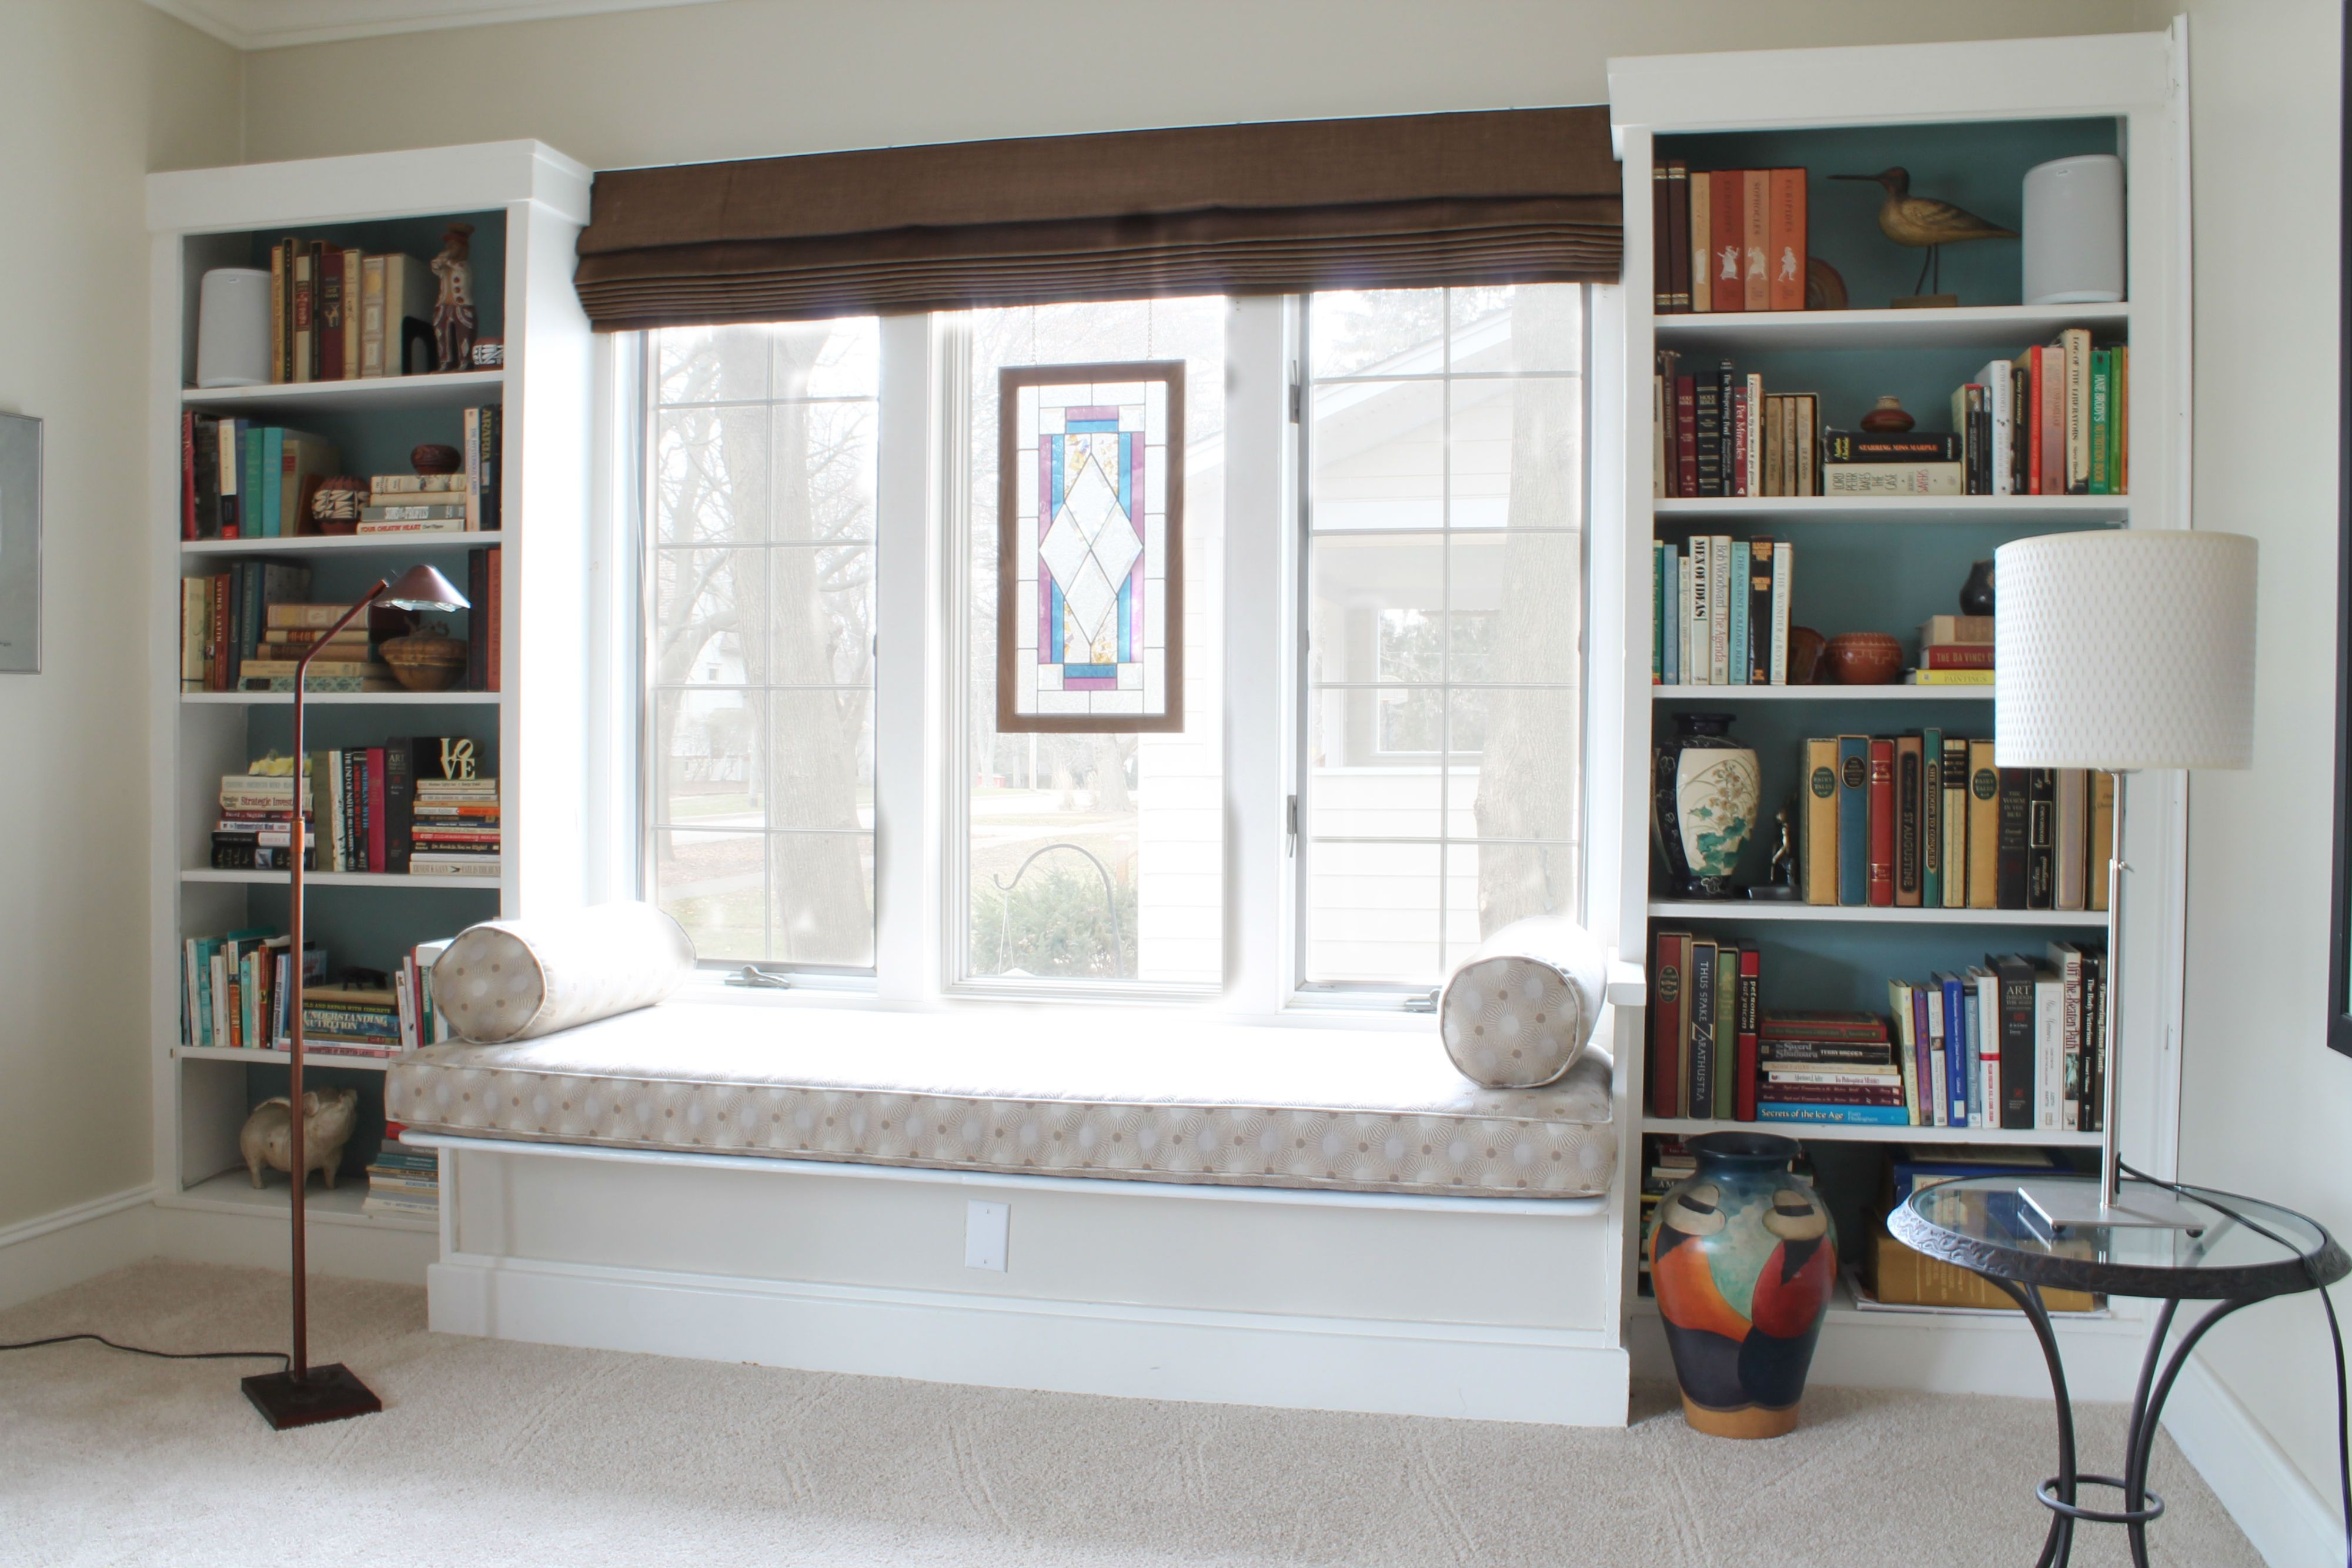 Built-in window seat with bookcases | Chicago ReDesign ...